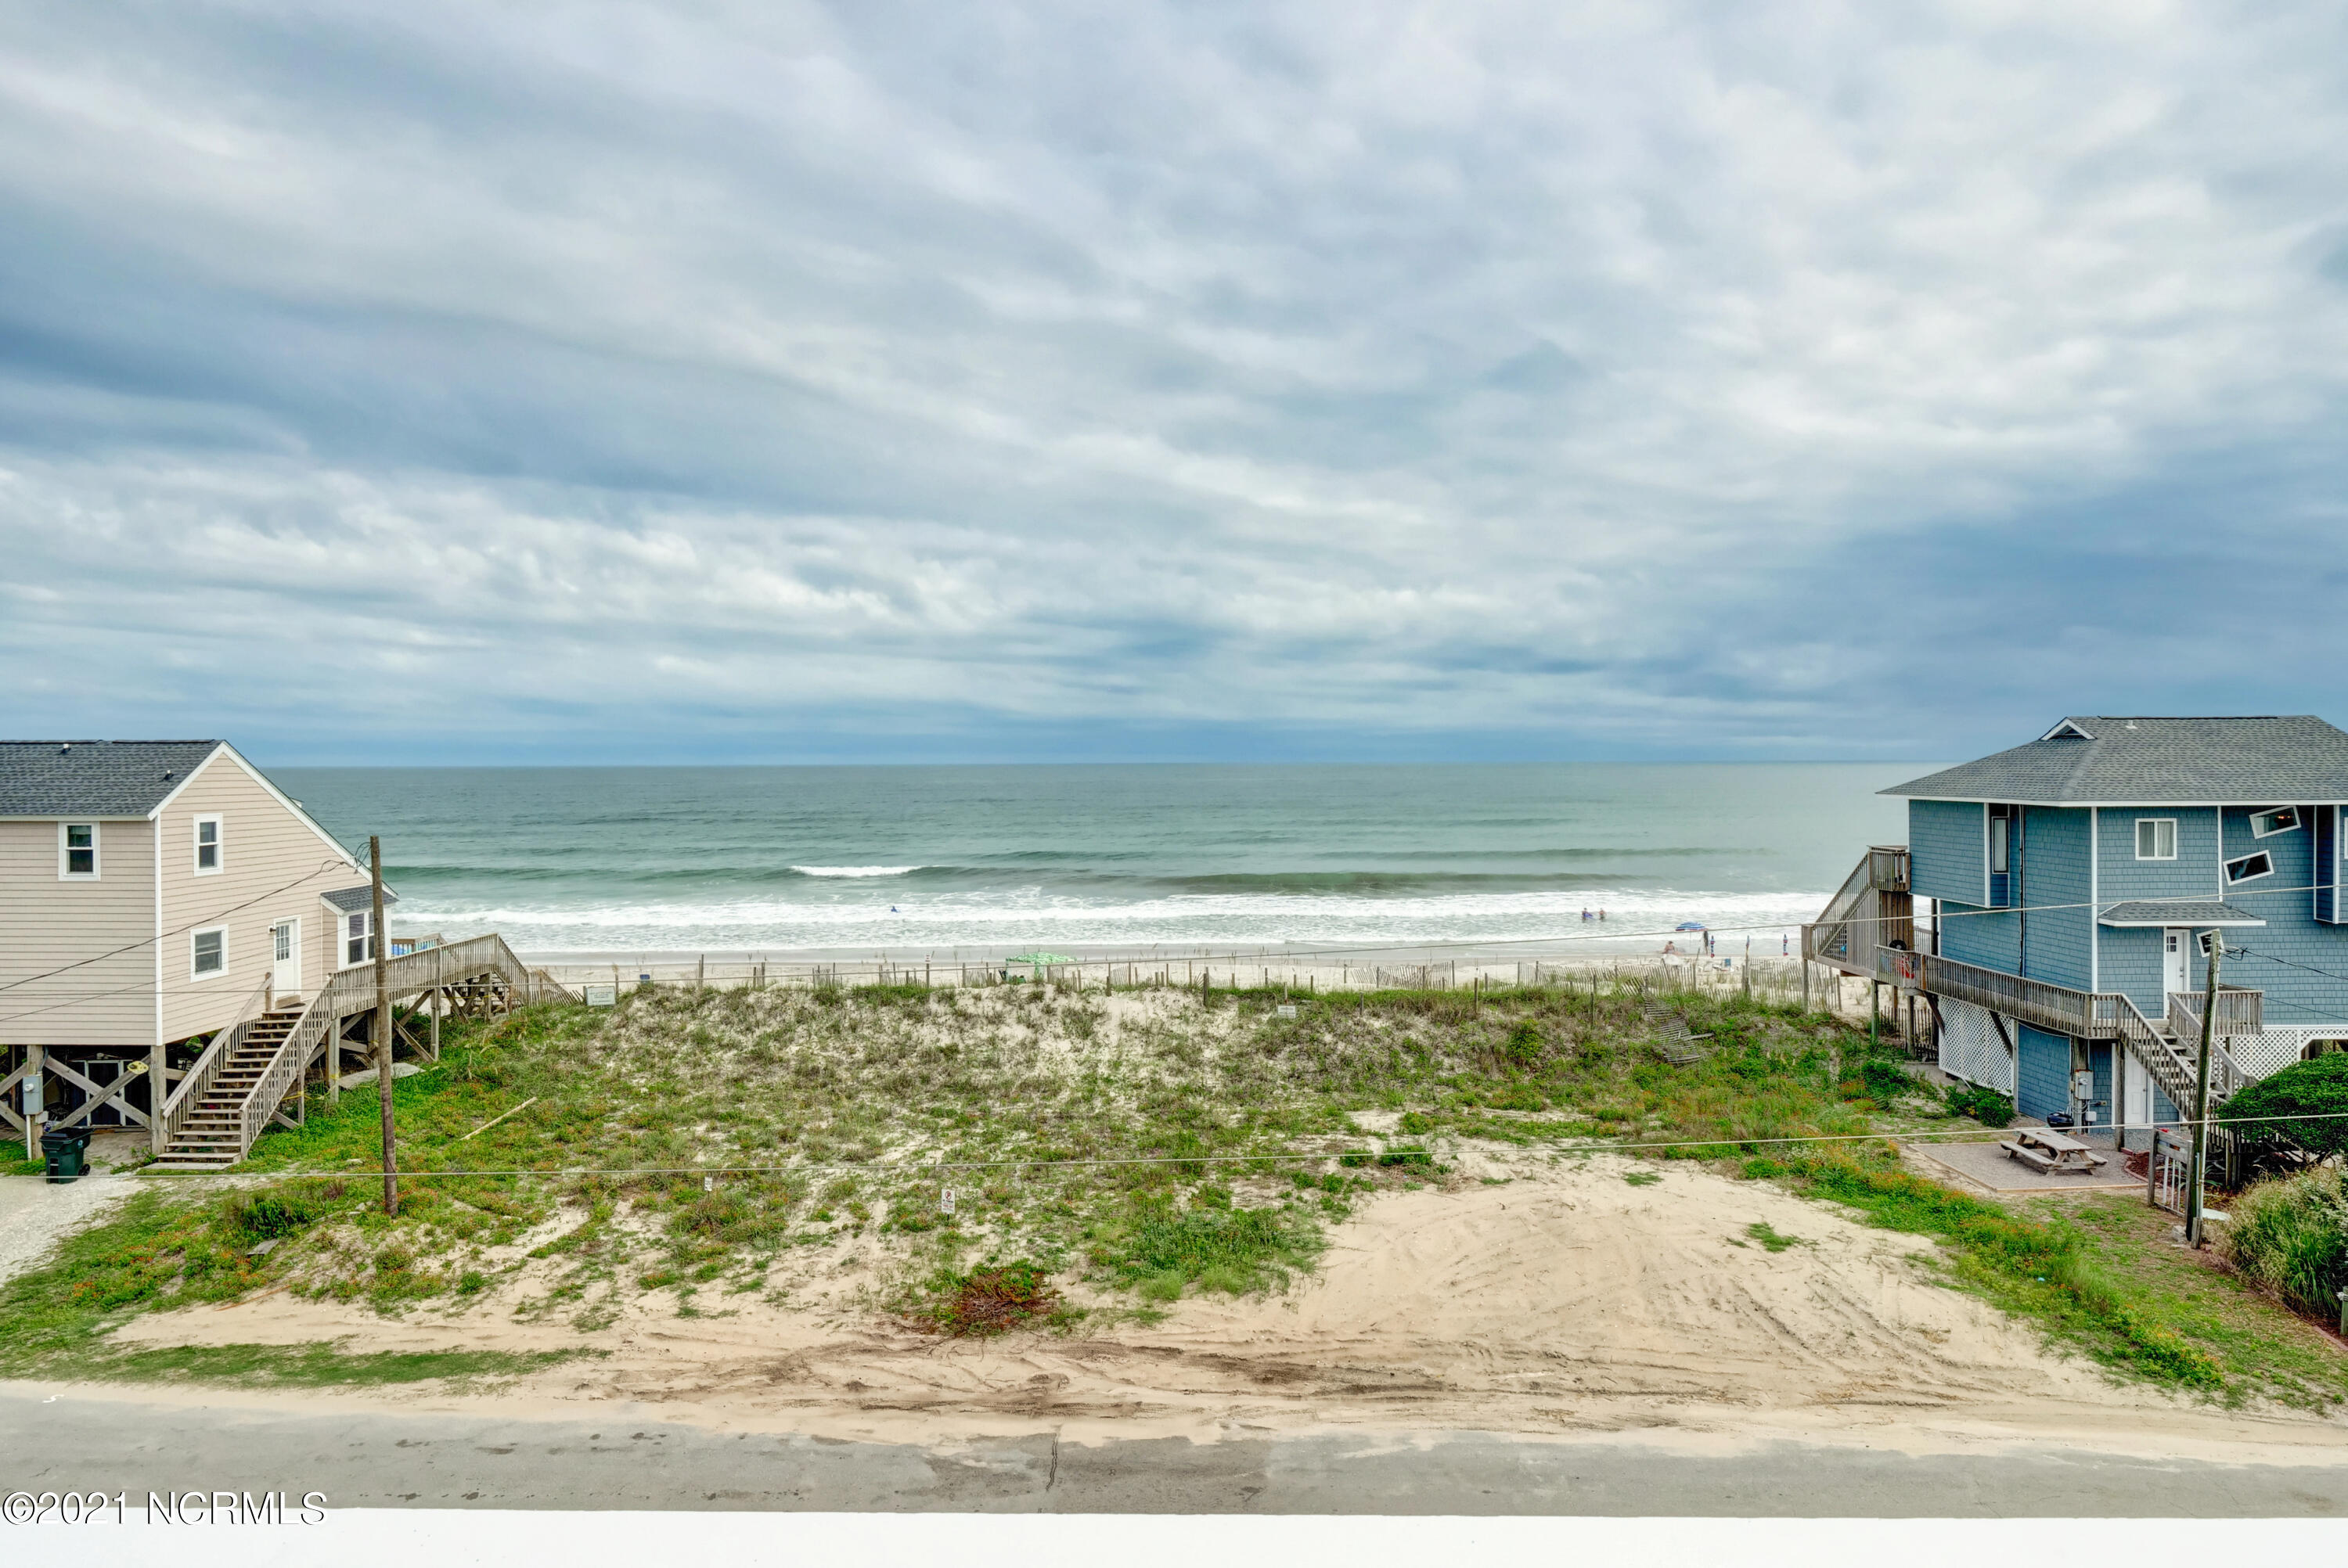 189 Topsail Road, North Topsail Beach, North Carolina 28460, 6 Bedrooms Bedrooms, 10 Rooms Rooms,4 BathroomsBathrooms,Single family residence,For sale,Topsail,100285390